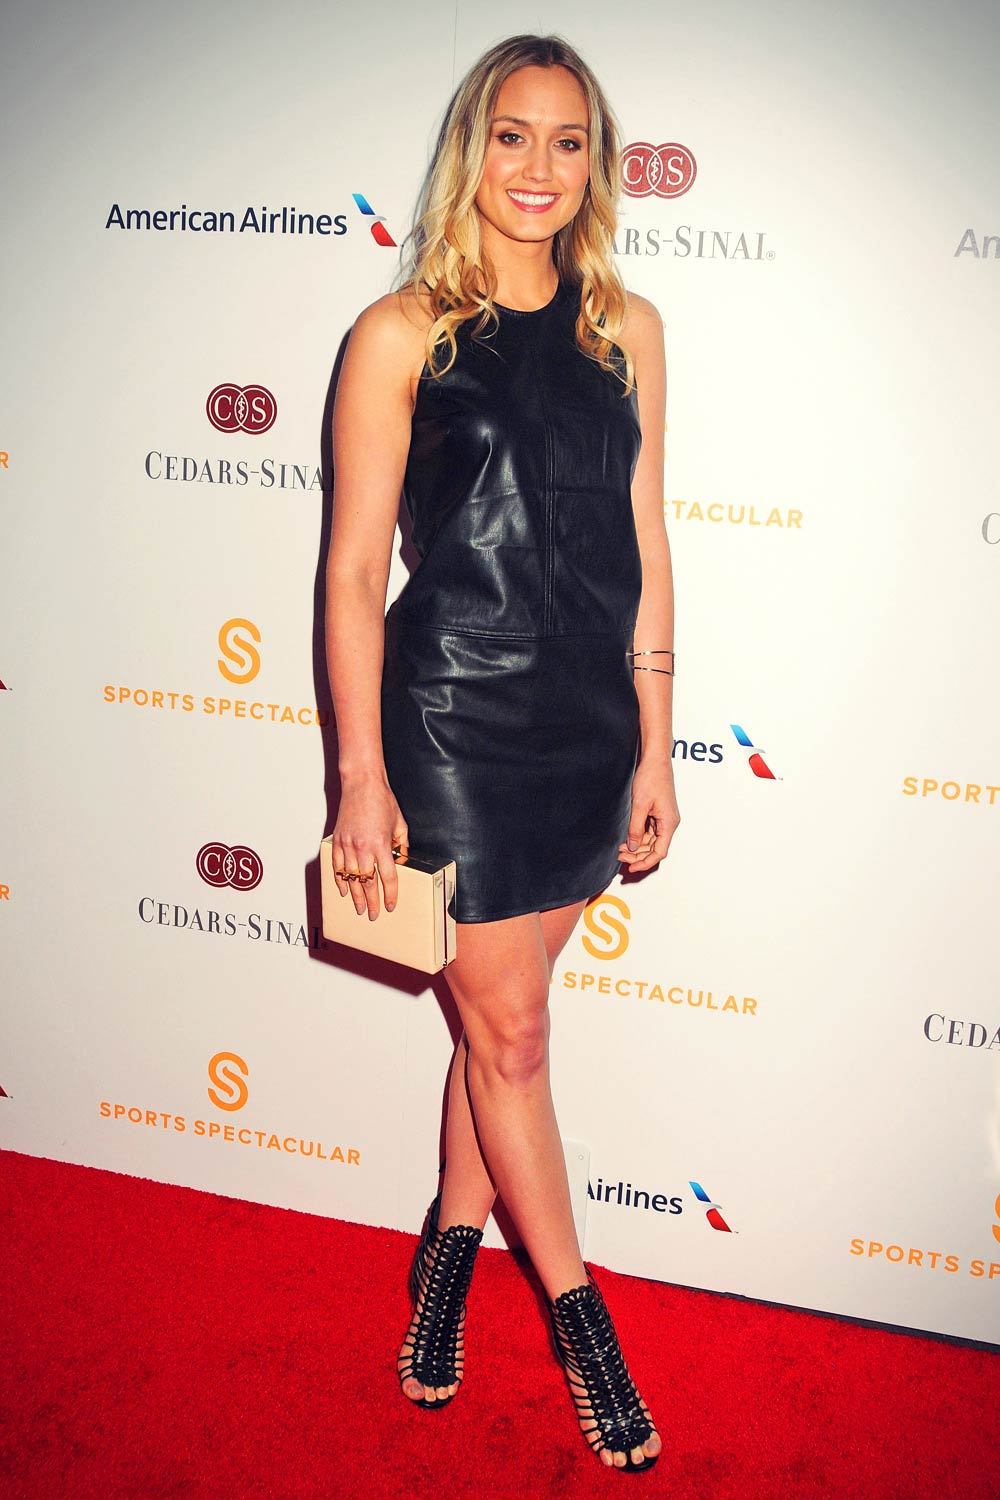 Naomi Kyle at the 2015 Sports Spectacular Gala